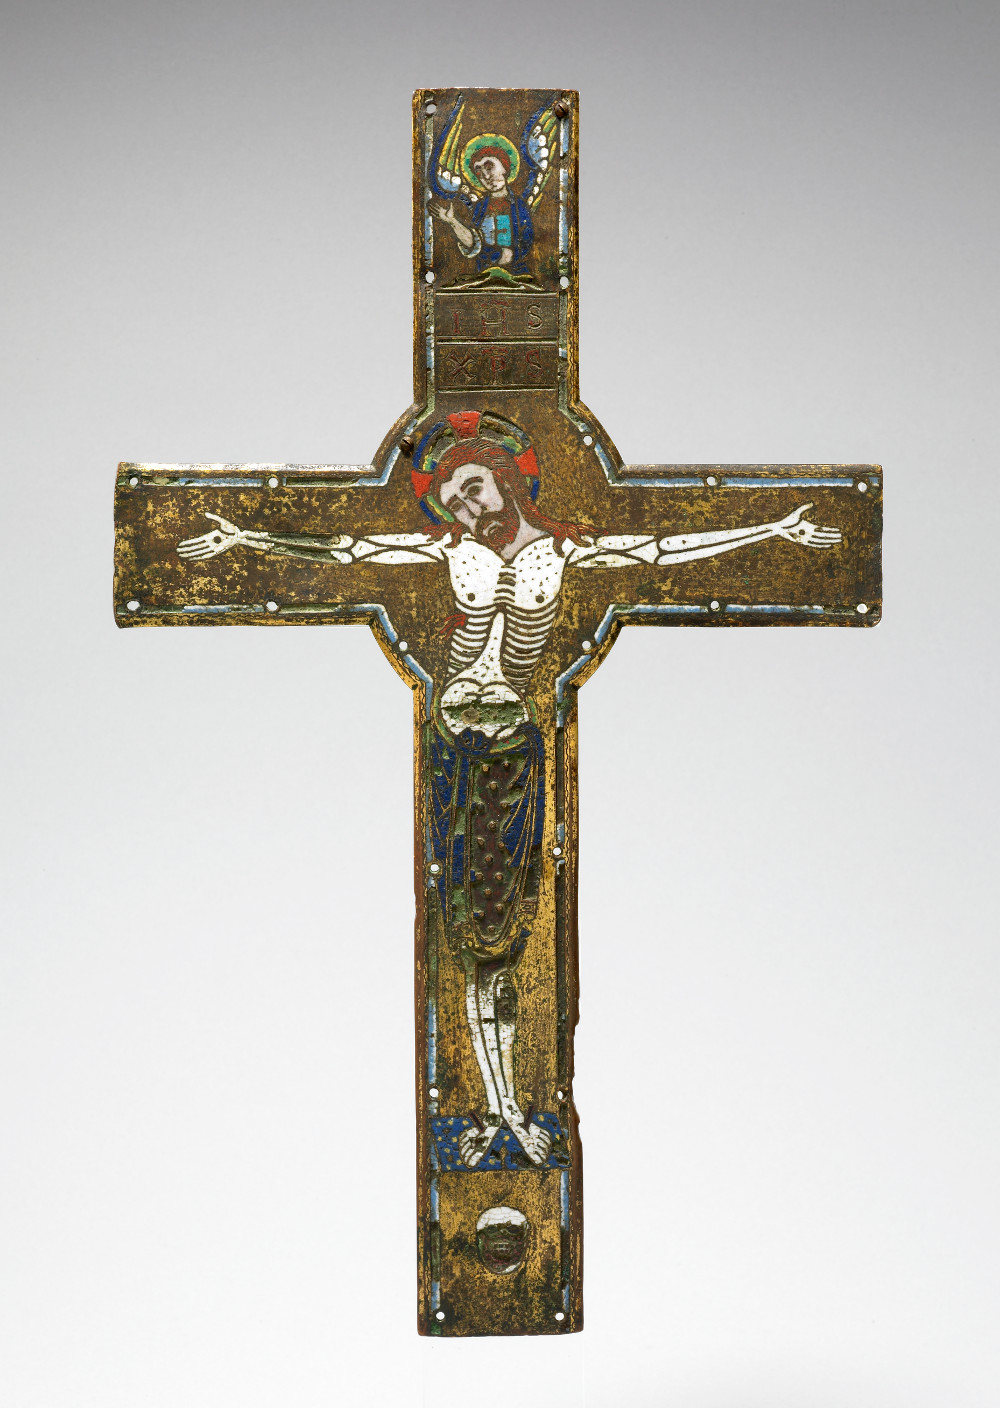 Crucifix  - CopperAbout AD 1190Limoges, FranceBritish Museum The crucifix is the most recognisable symbol of Christianity. It is a representation of the crucifixion of Jesus Christ, the son of god, who is believed to have died for the salvation of humanity. This crucifix would have acted as a focal point for worship. It shows the body of Christ in white looking cadaverous. His face, however, is not leached of colour, and his eyes remain open indicating that he remains unconquered by death.